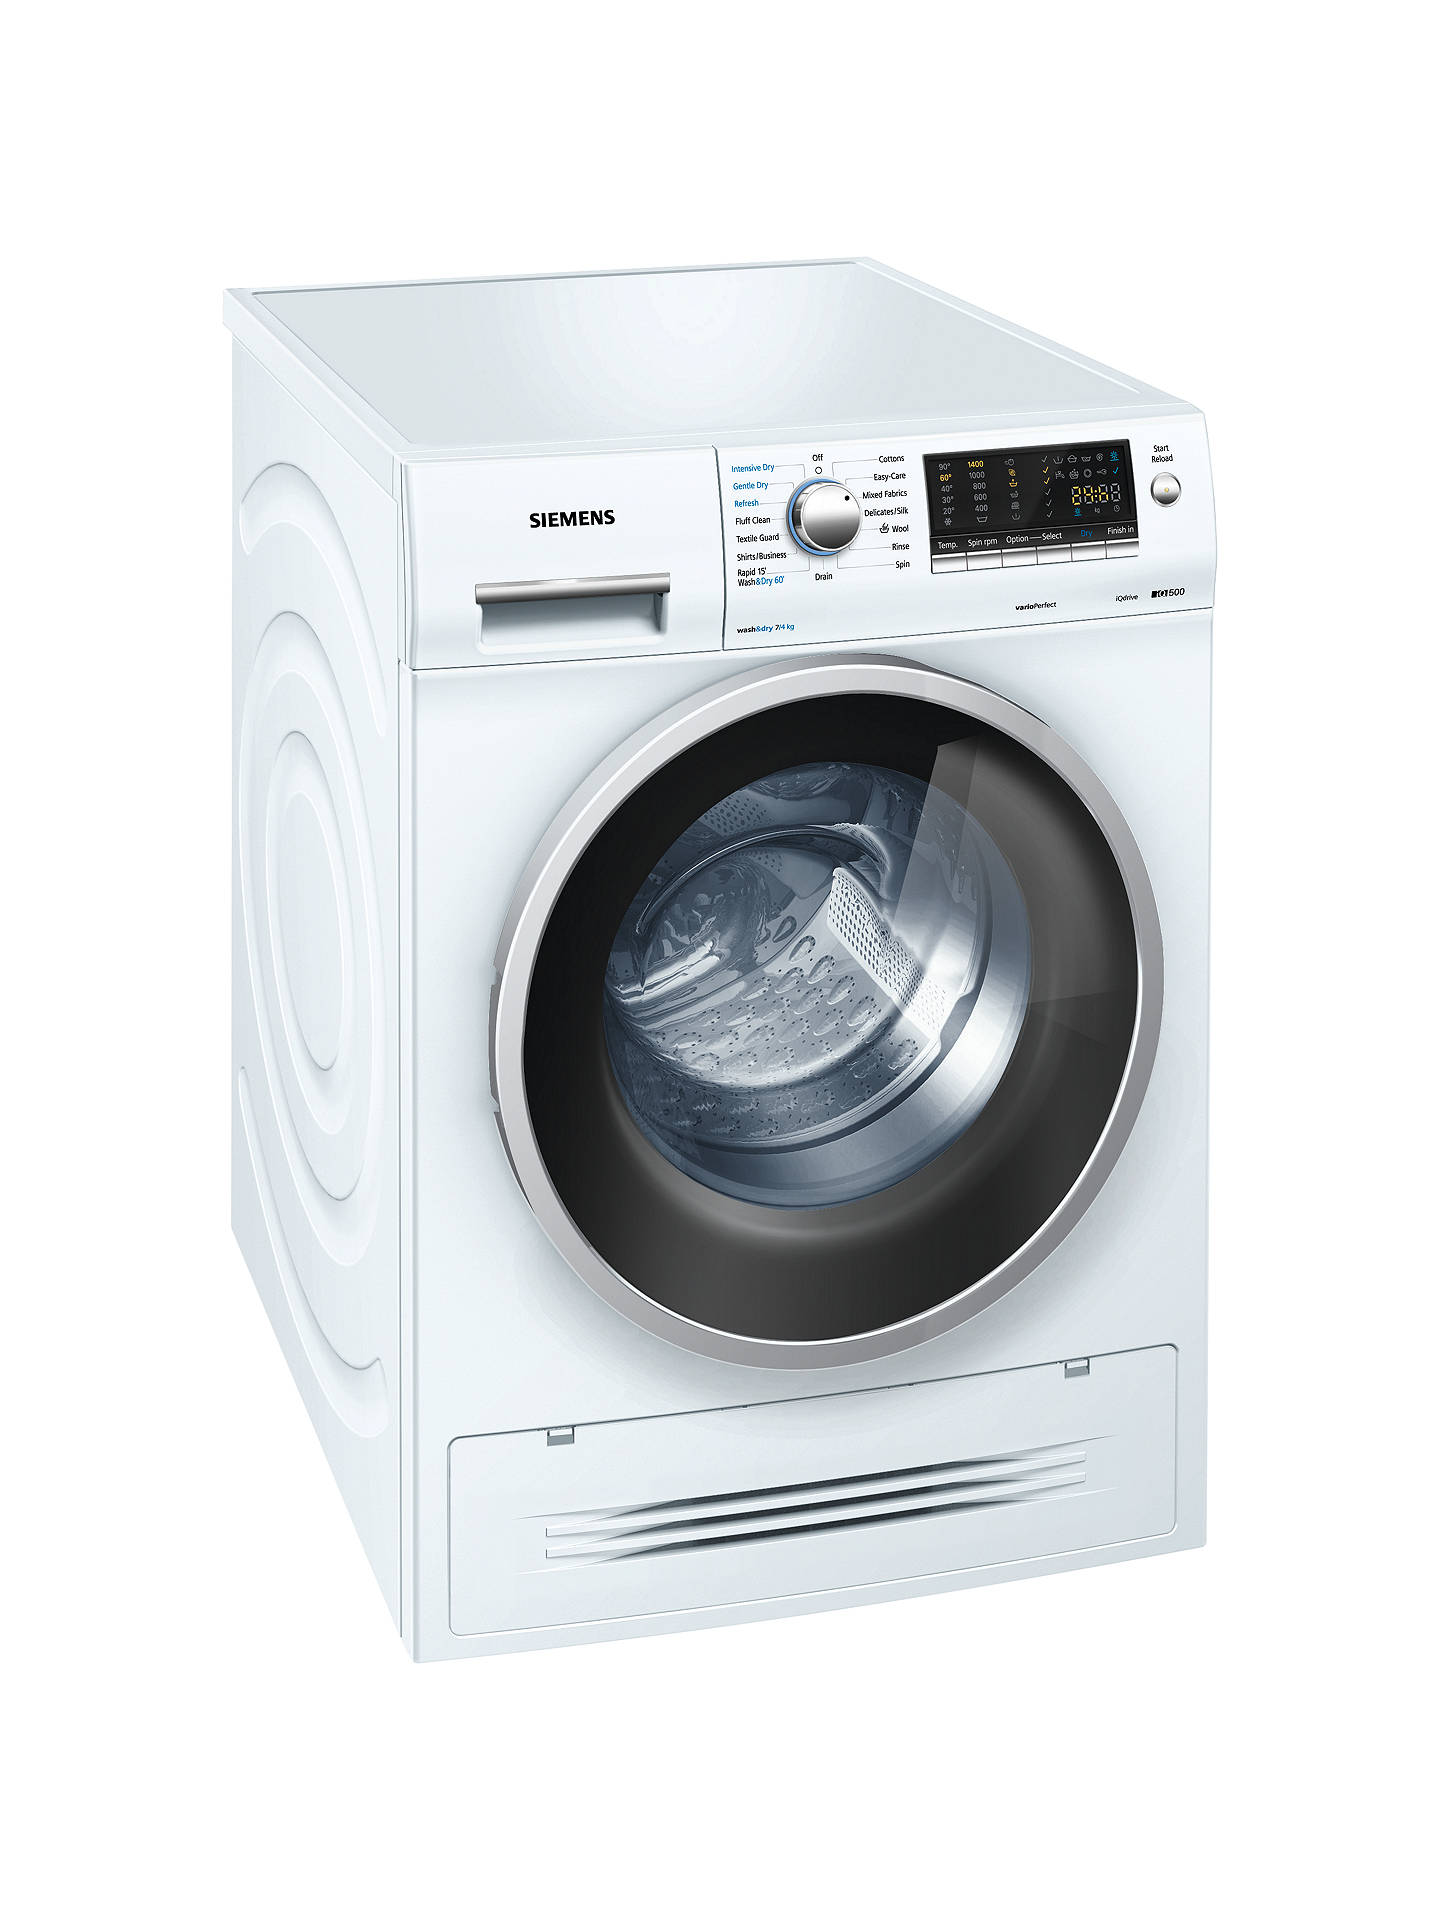 siemens wd14h421gb washer dryer 7kg wash 4kg dry load a energy rating 1400rpm spin white at. Black Bedroom Furniture Sets. Home Design Ideas